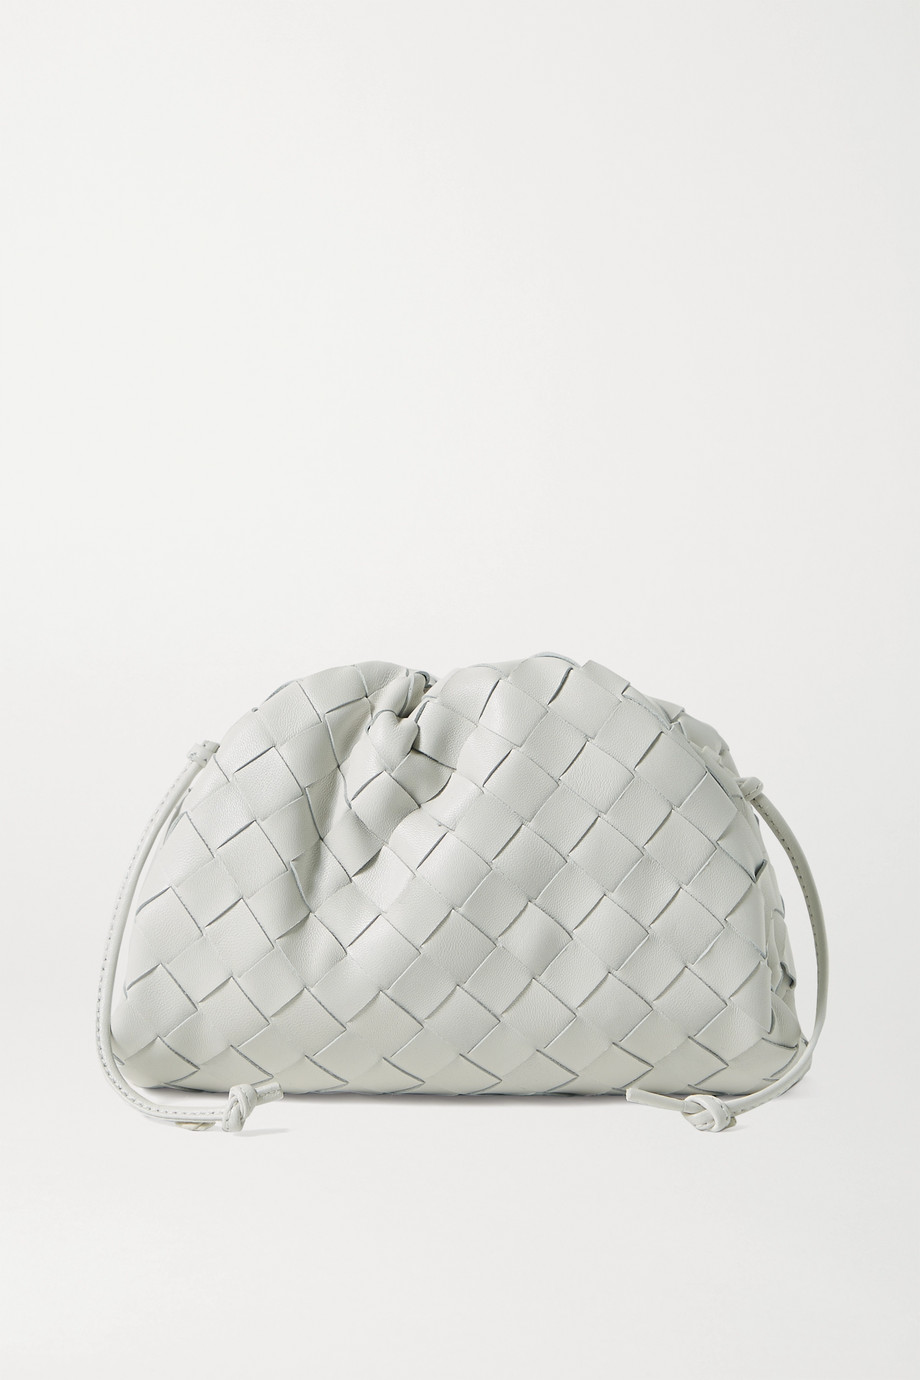 Bottega Veneta The Pouch small gathered intrecciato leather clutch